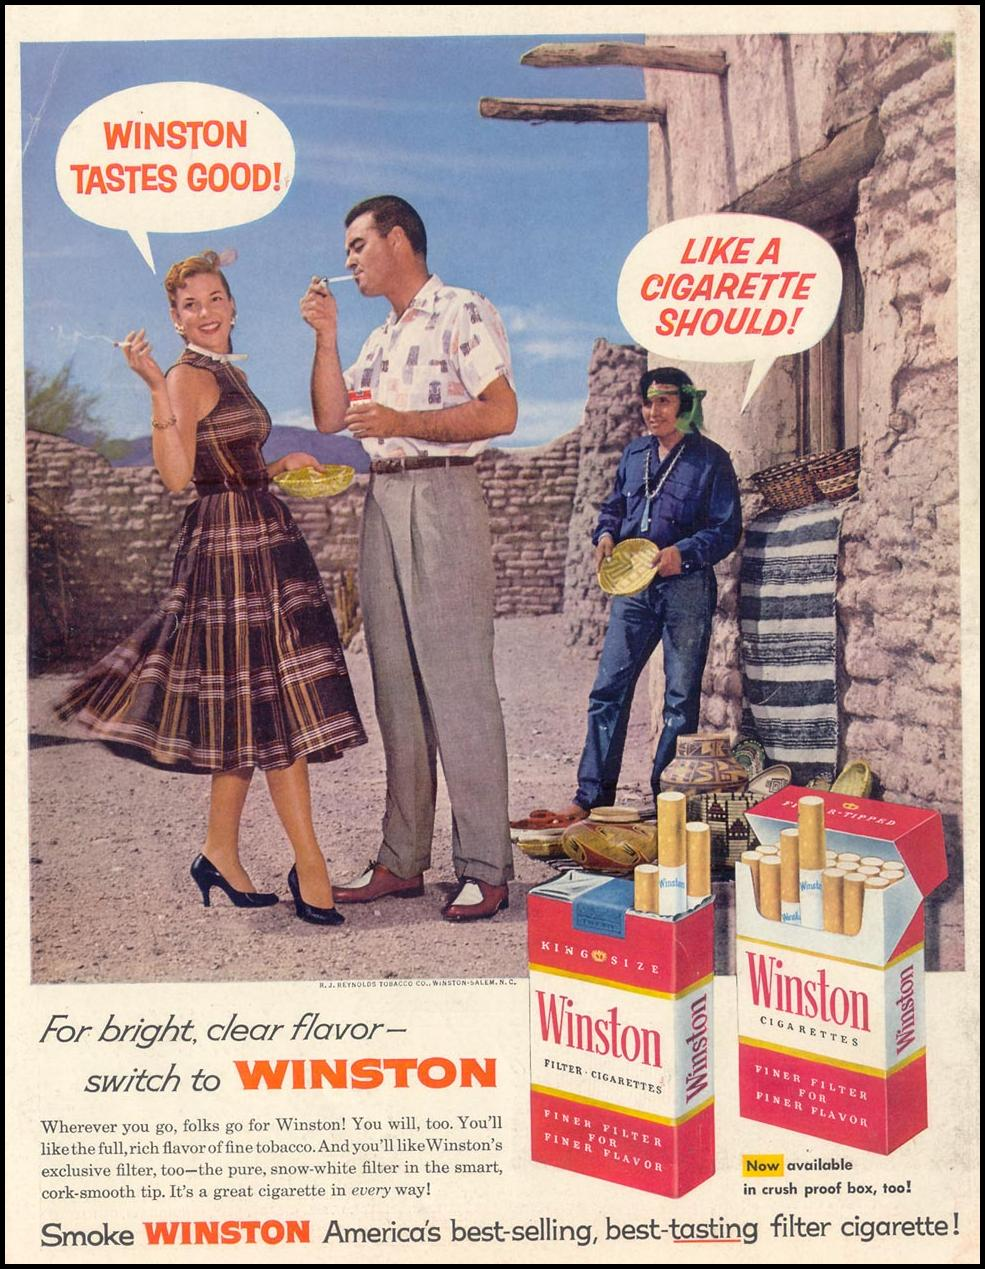 WINSTON CIGARETTES LIFE 11/11/1957 BACK COVER